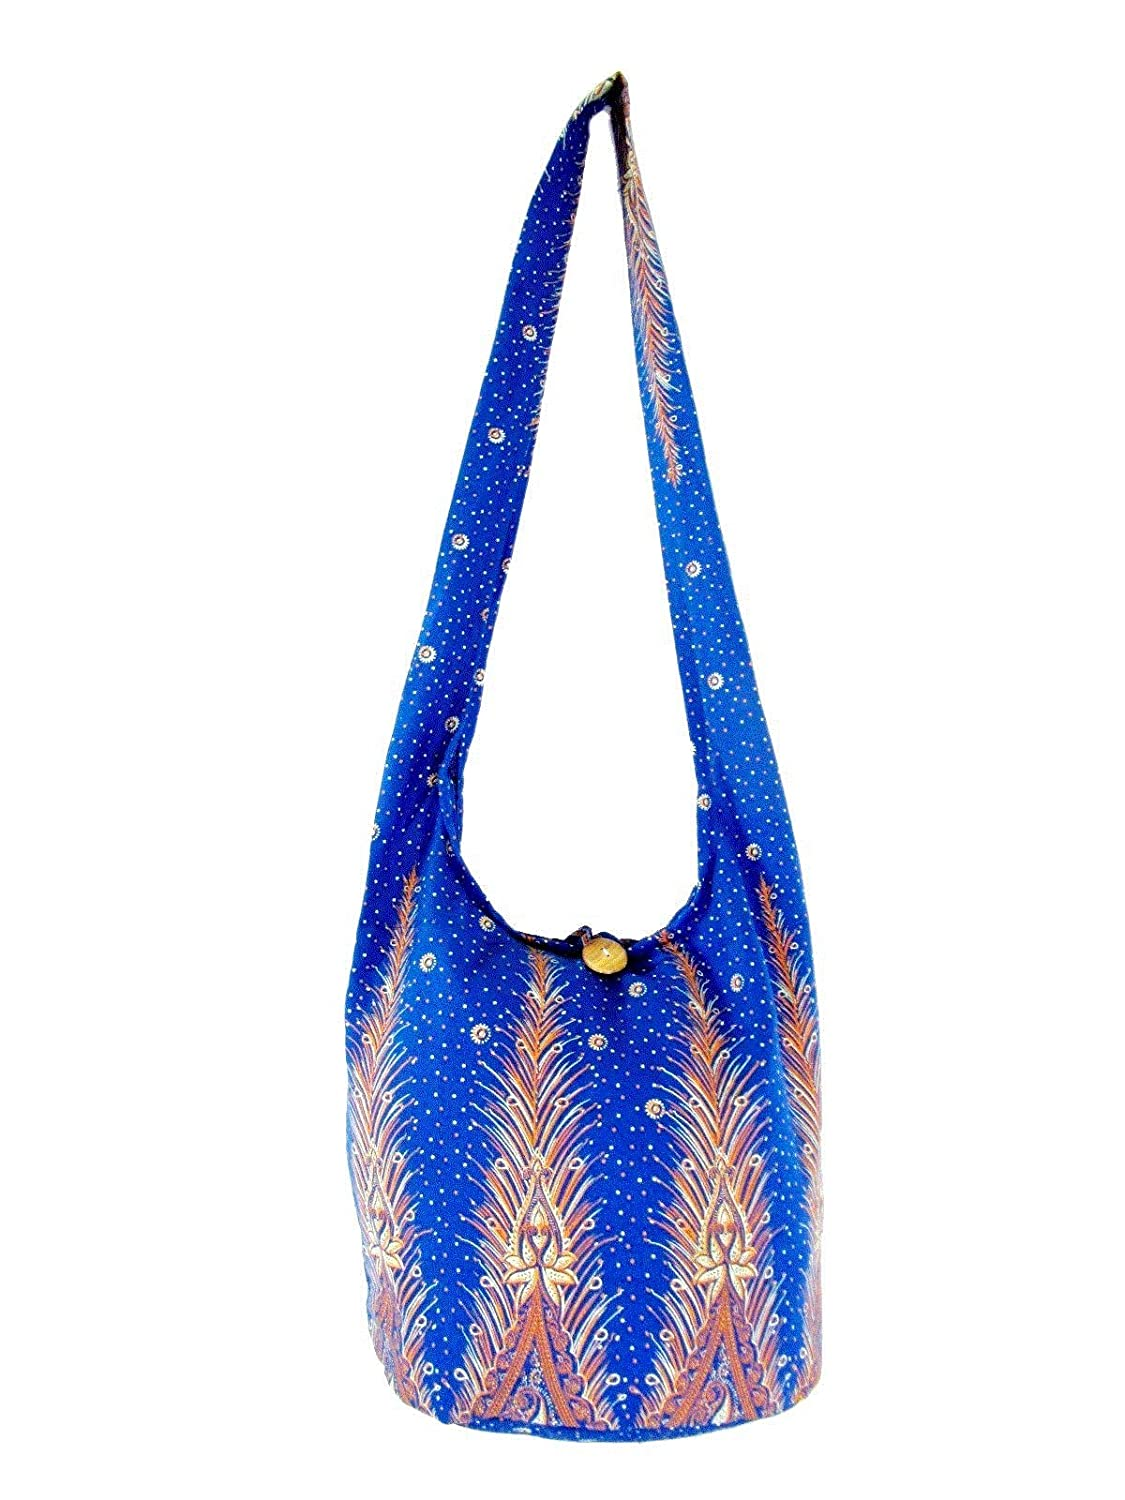 Fully Lined Thai Cotton Bohemian Sling Bag Medium Cotton Hippie Hobo Crossbody Bags for Women Peacock Feather Print